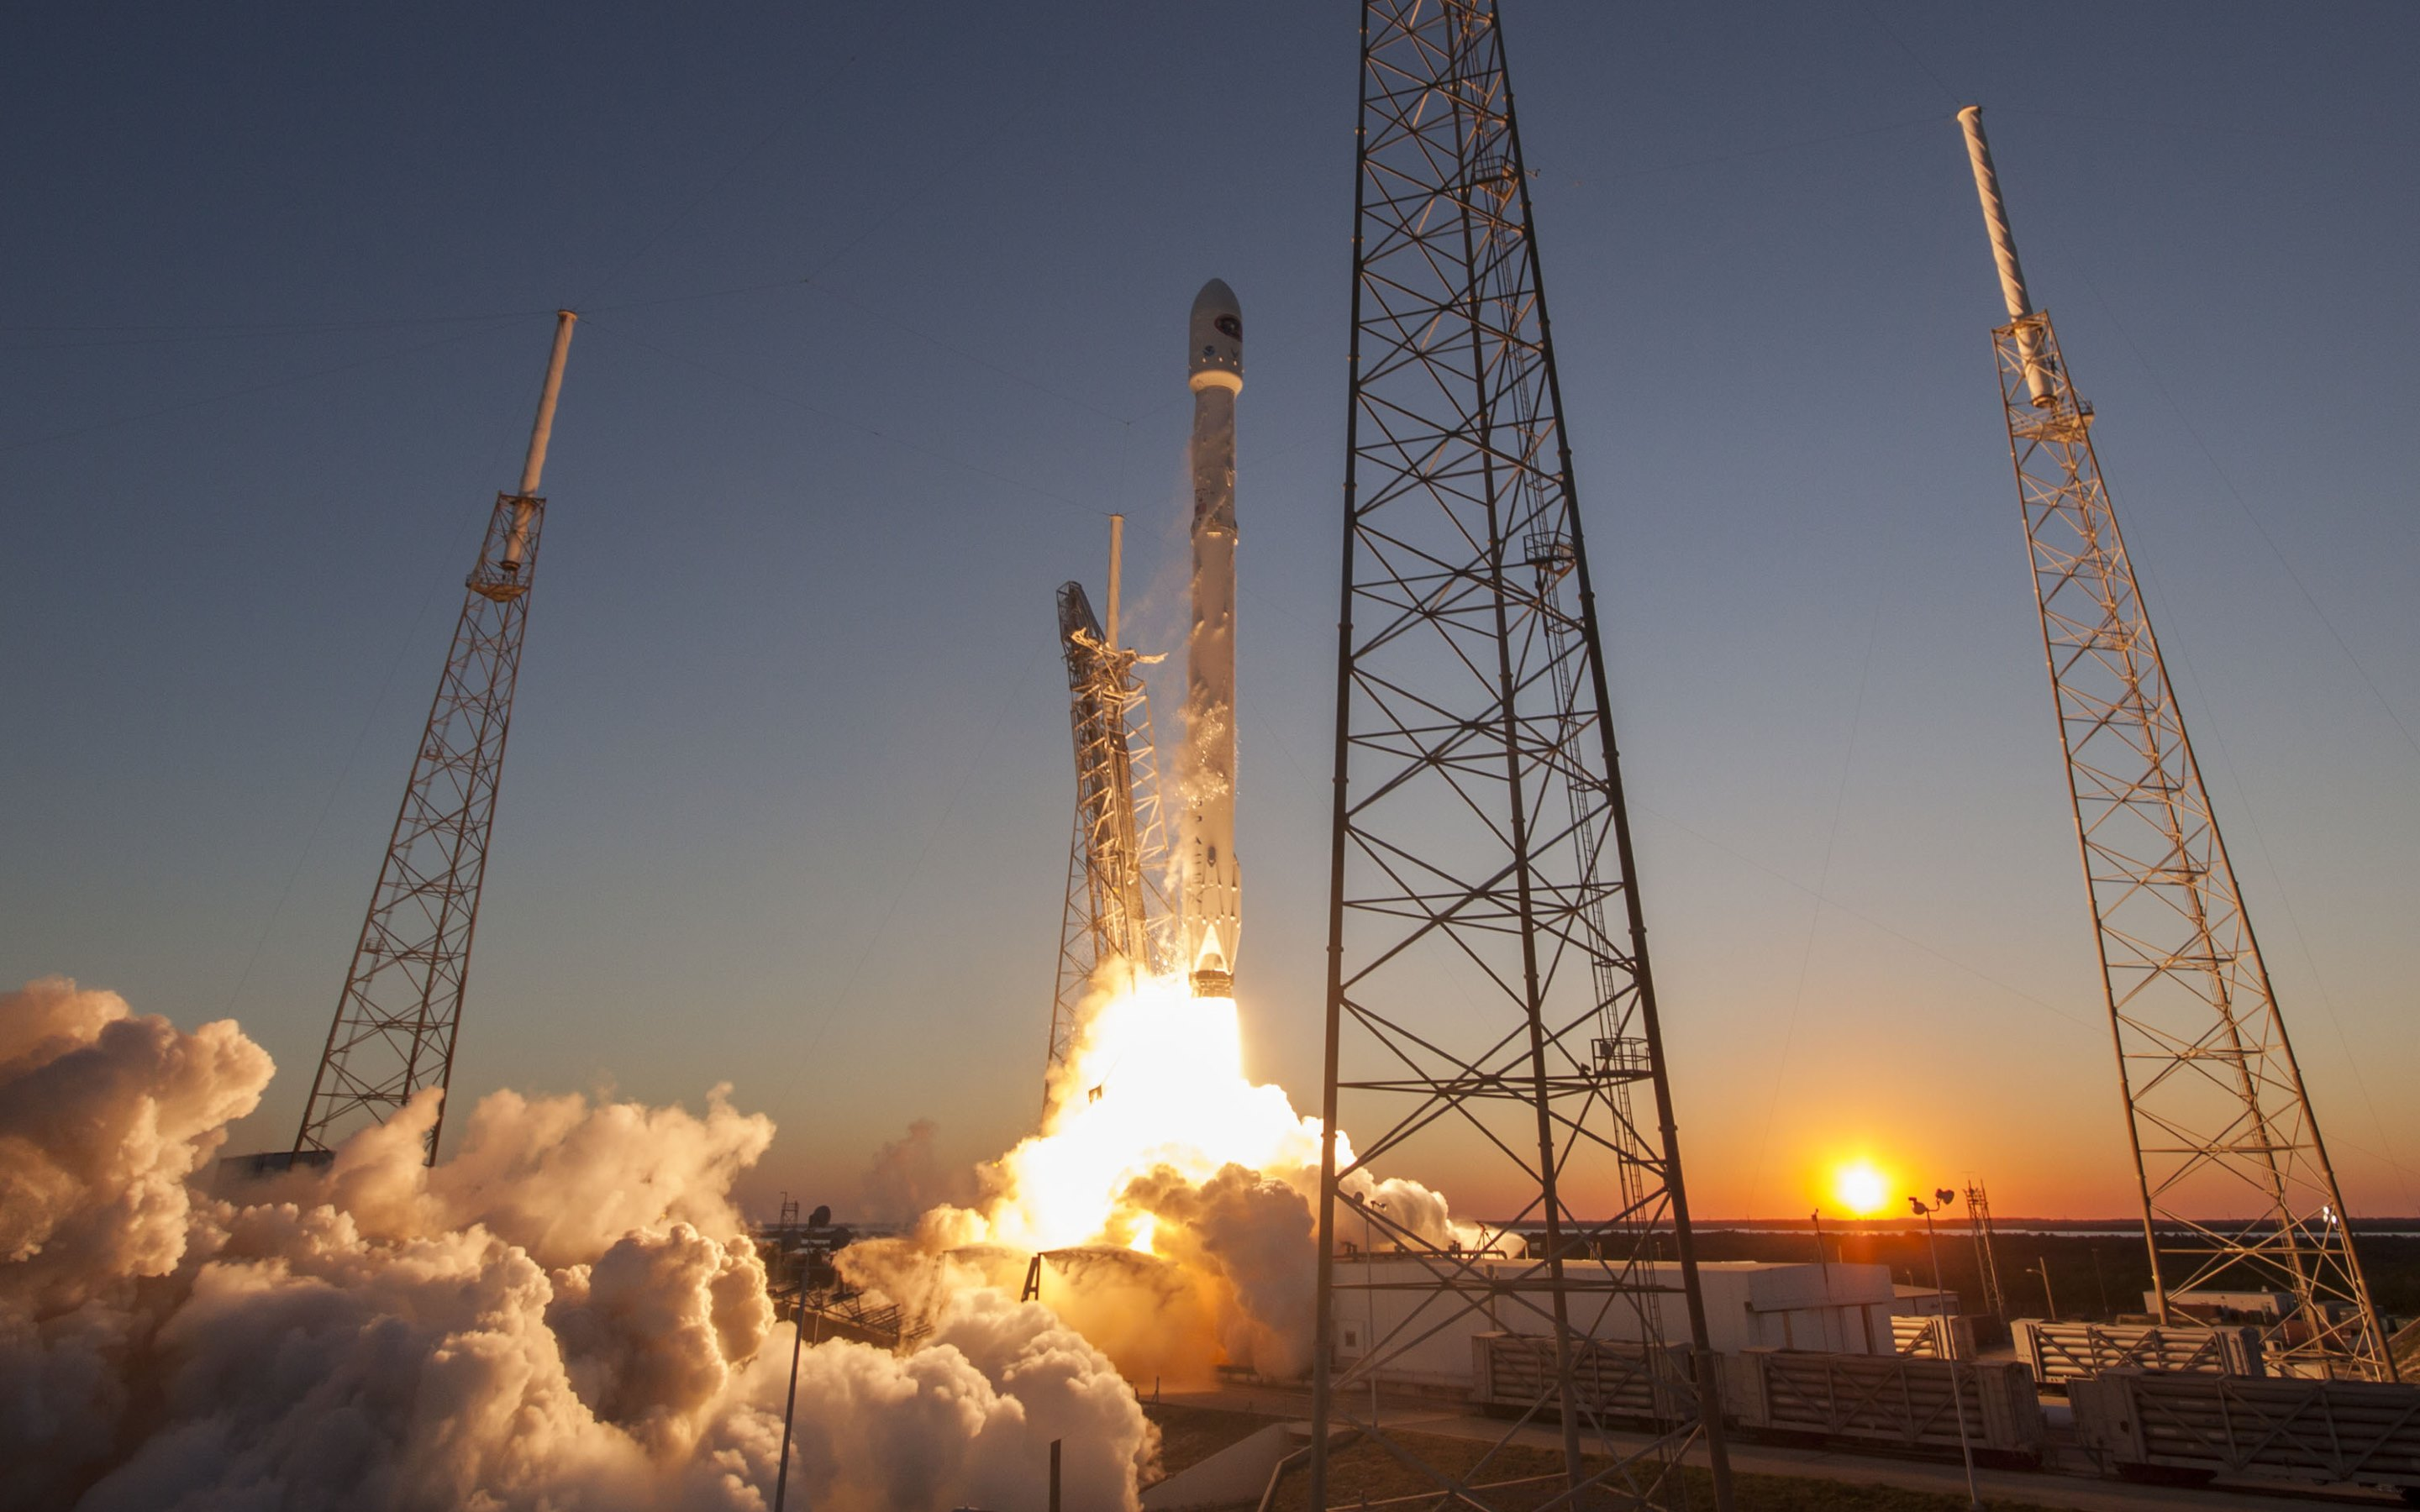 spacex rocket wallpaper background 258